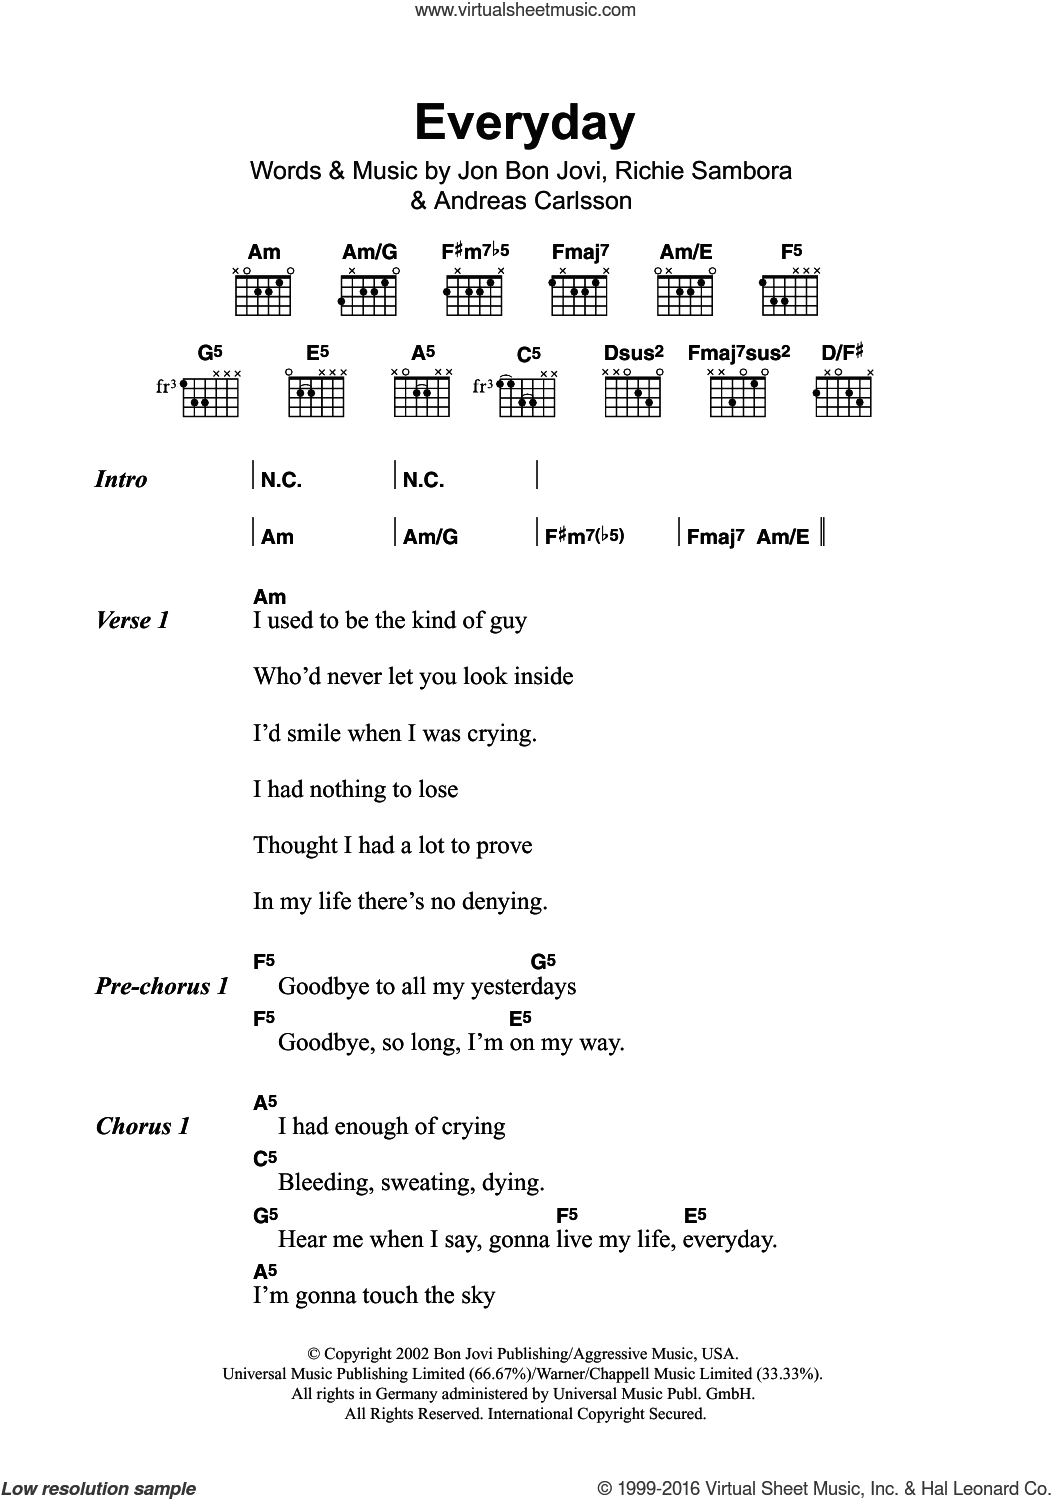 First Day Of My Life Chords Jovi Everyday Sheet Music For Guitar Chords Pdf